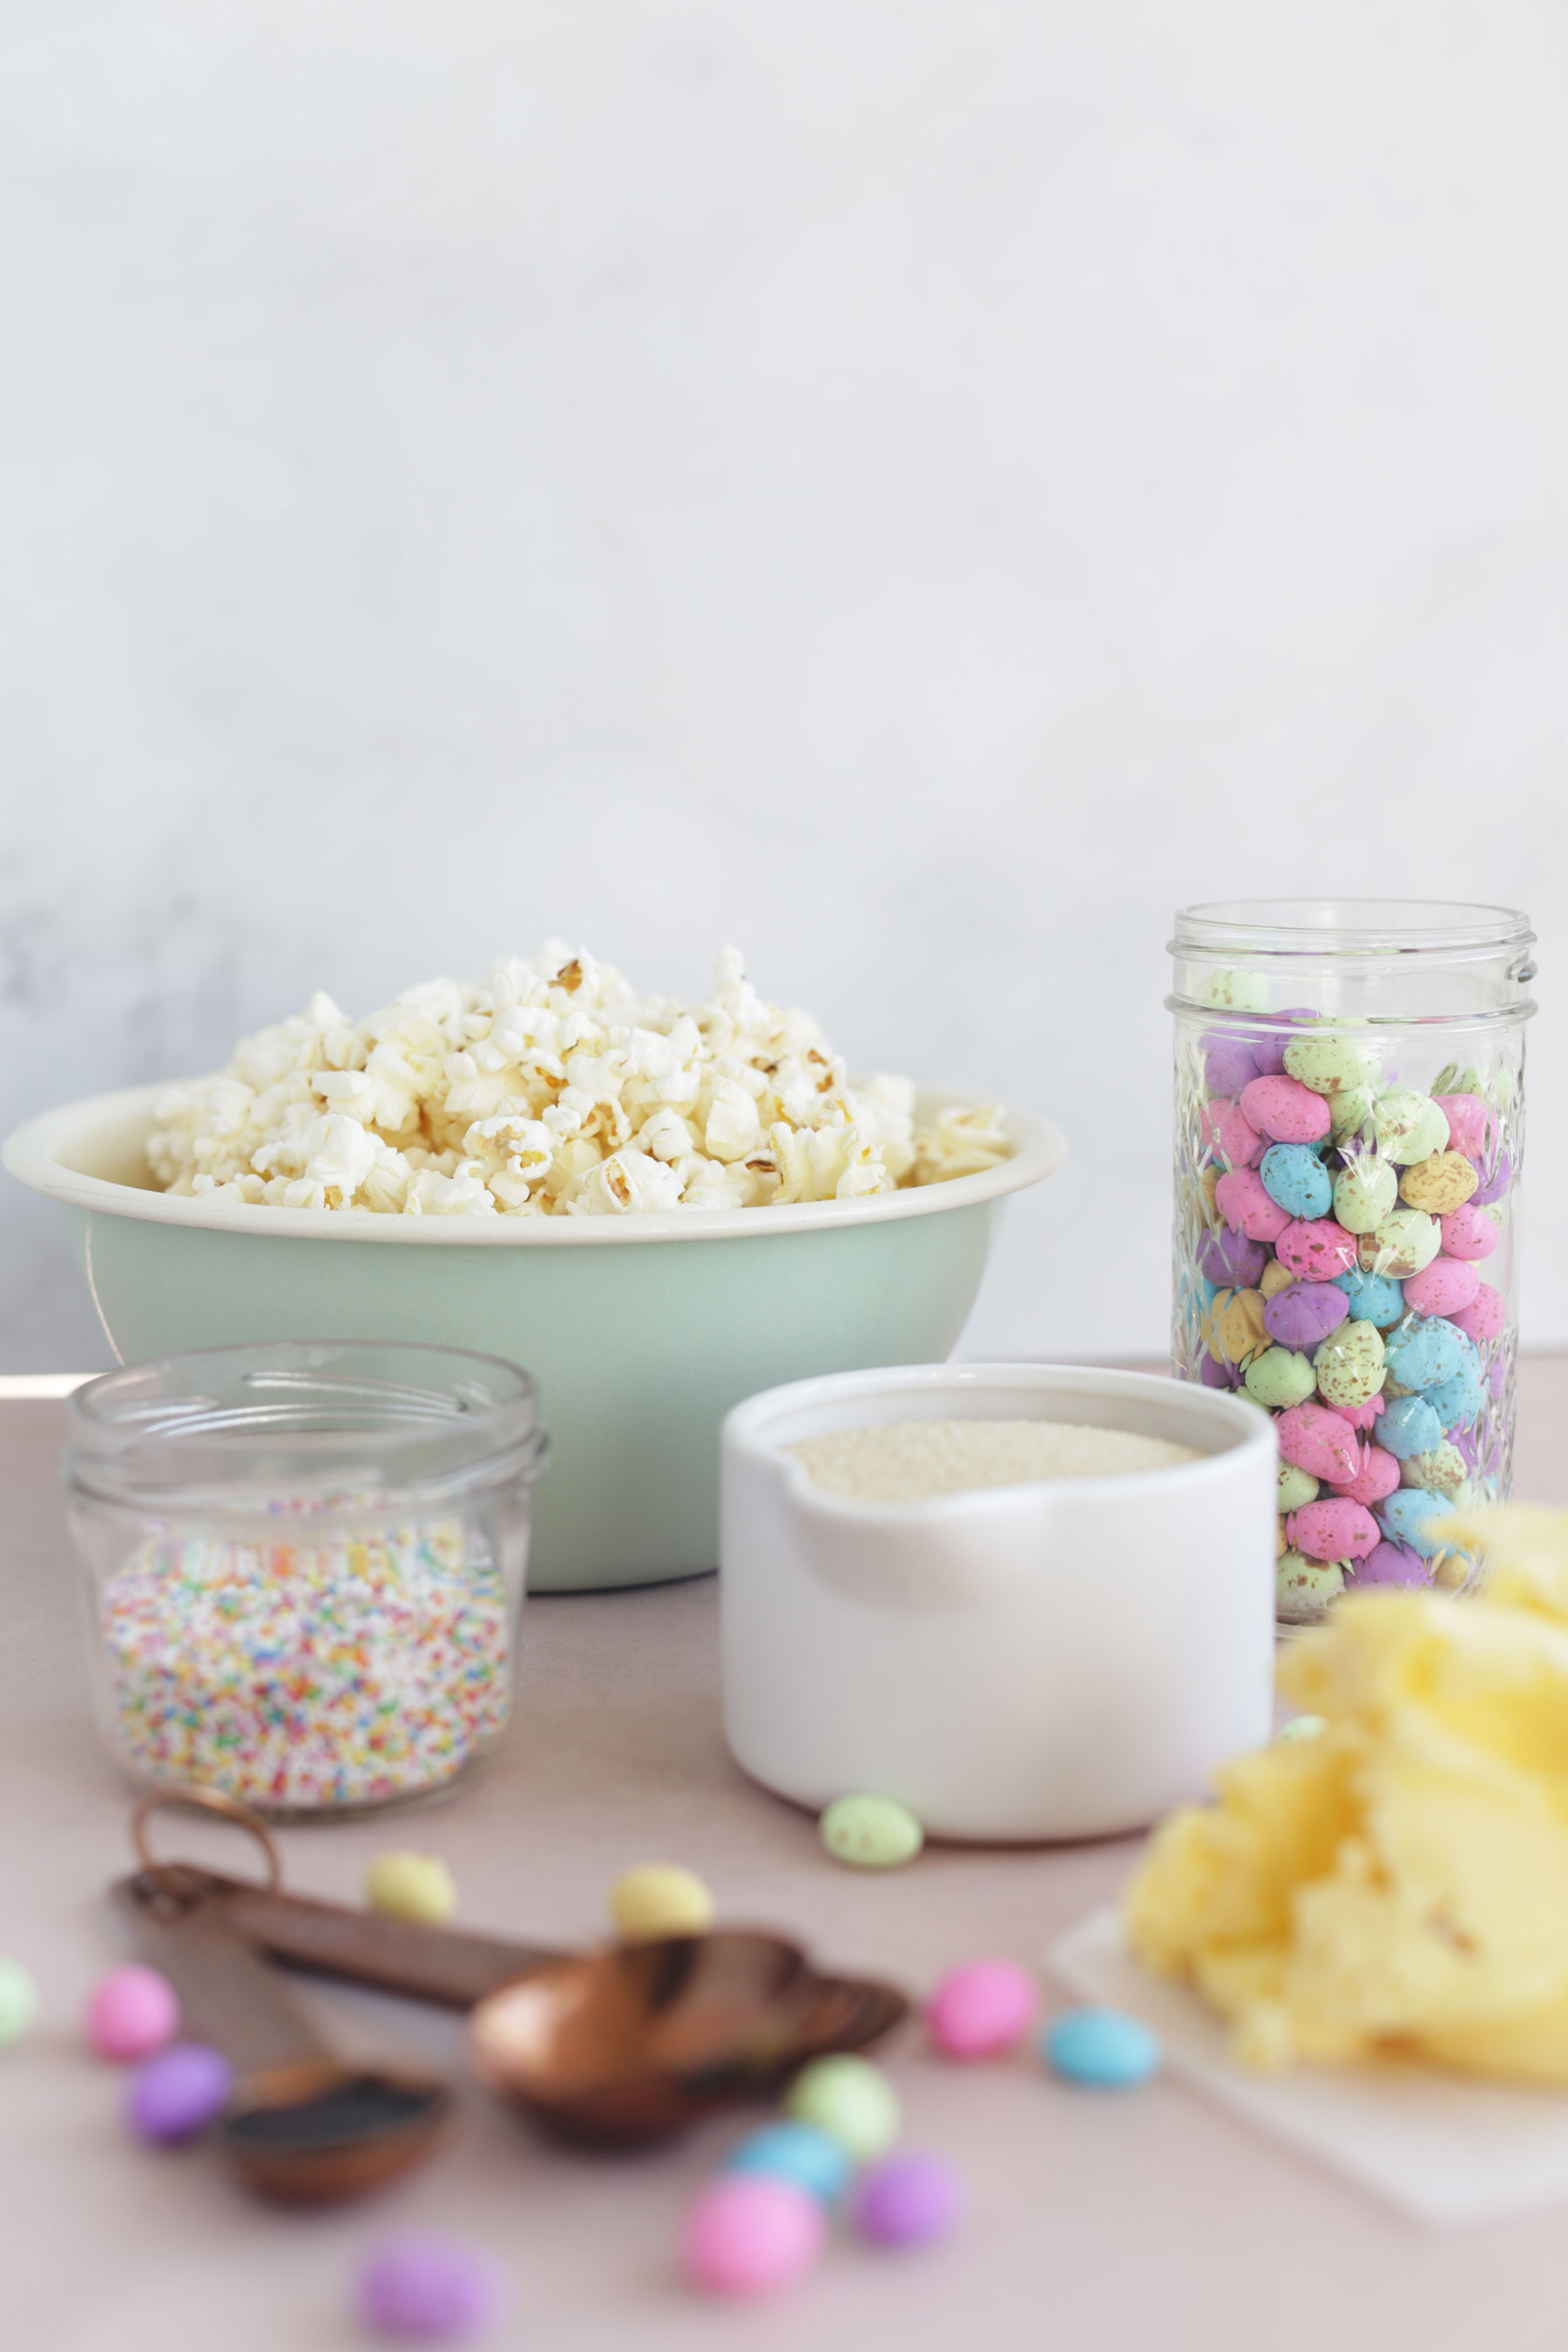 Caramel-Popcorn-with-speckled-eggs-and-sprinkles-9